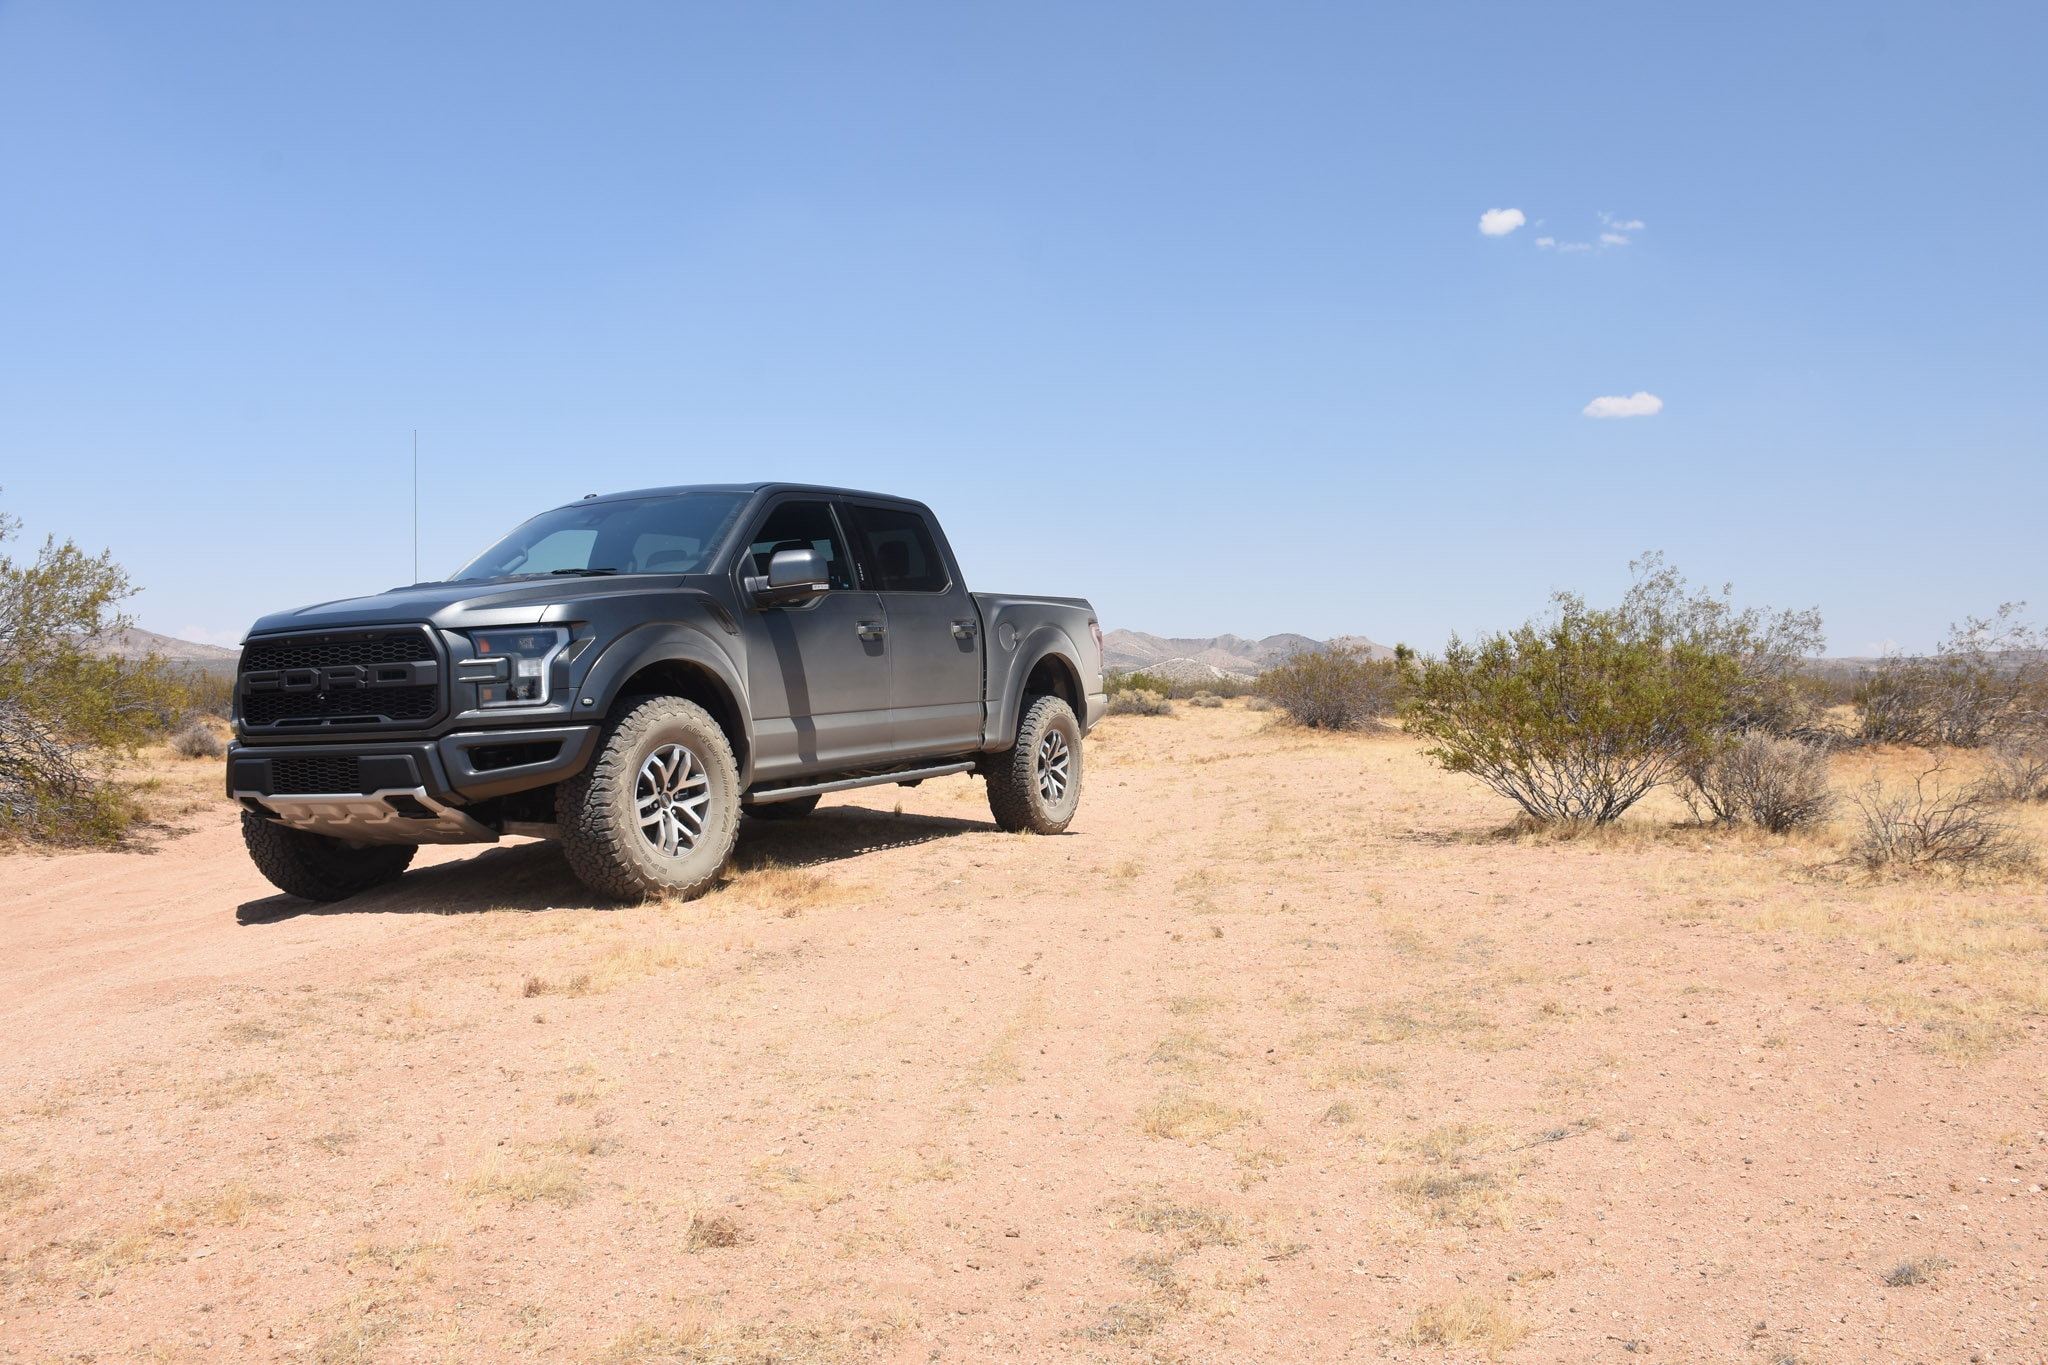 2017 Ford Raptor El Mirage 032